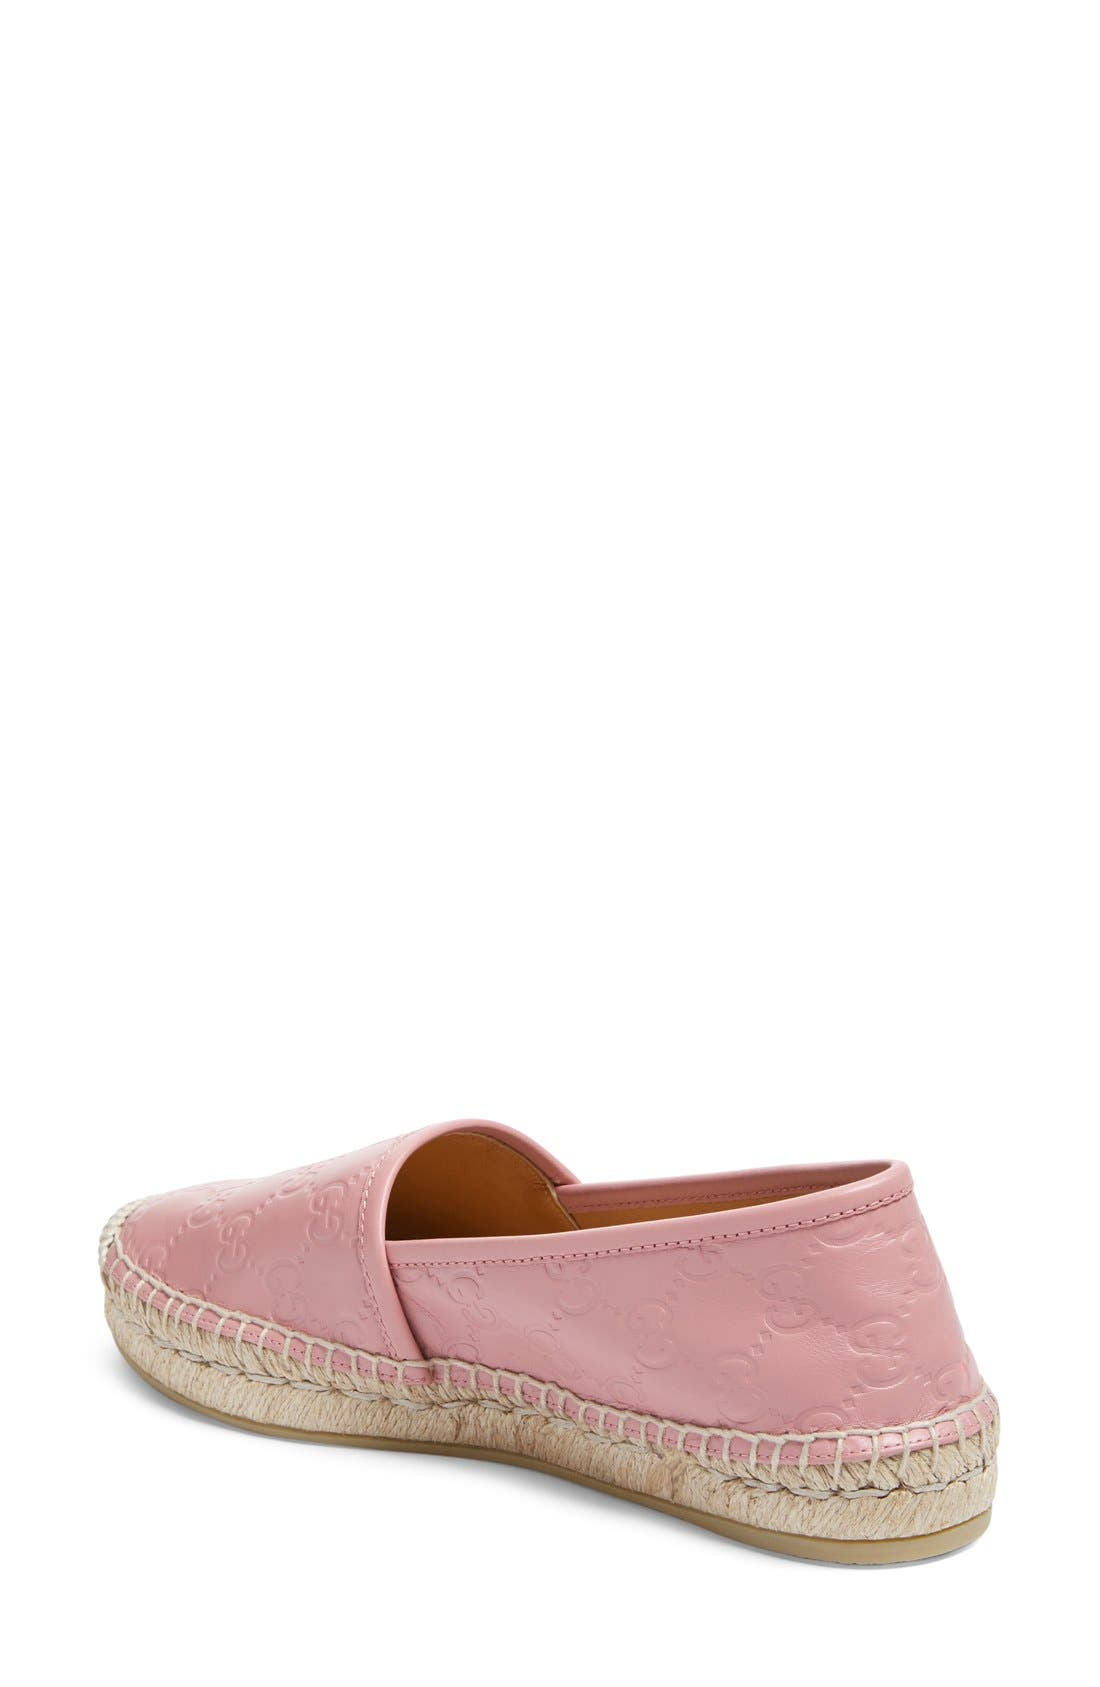 Alternate Image 2  - Gucci Pilar Espadrille Flat (Women)